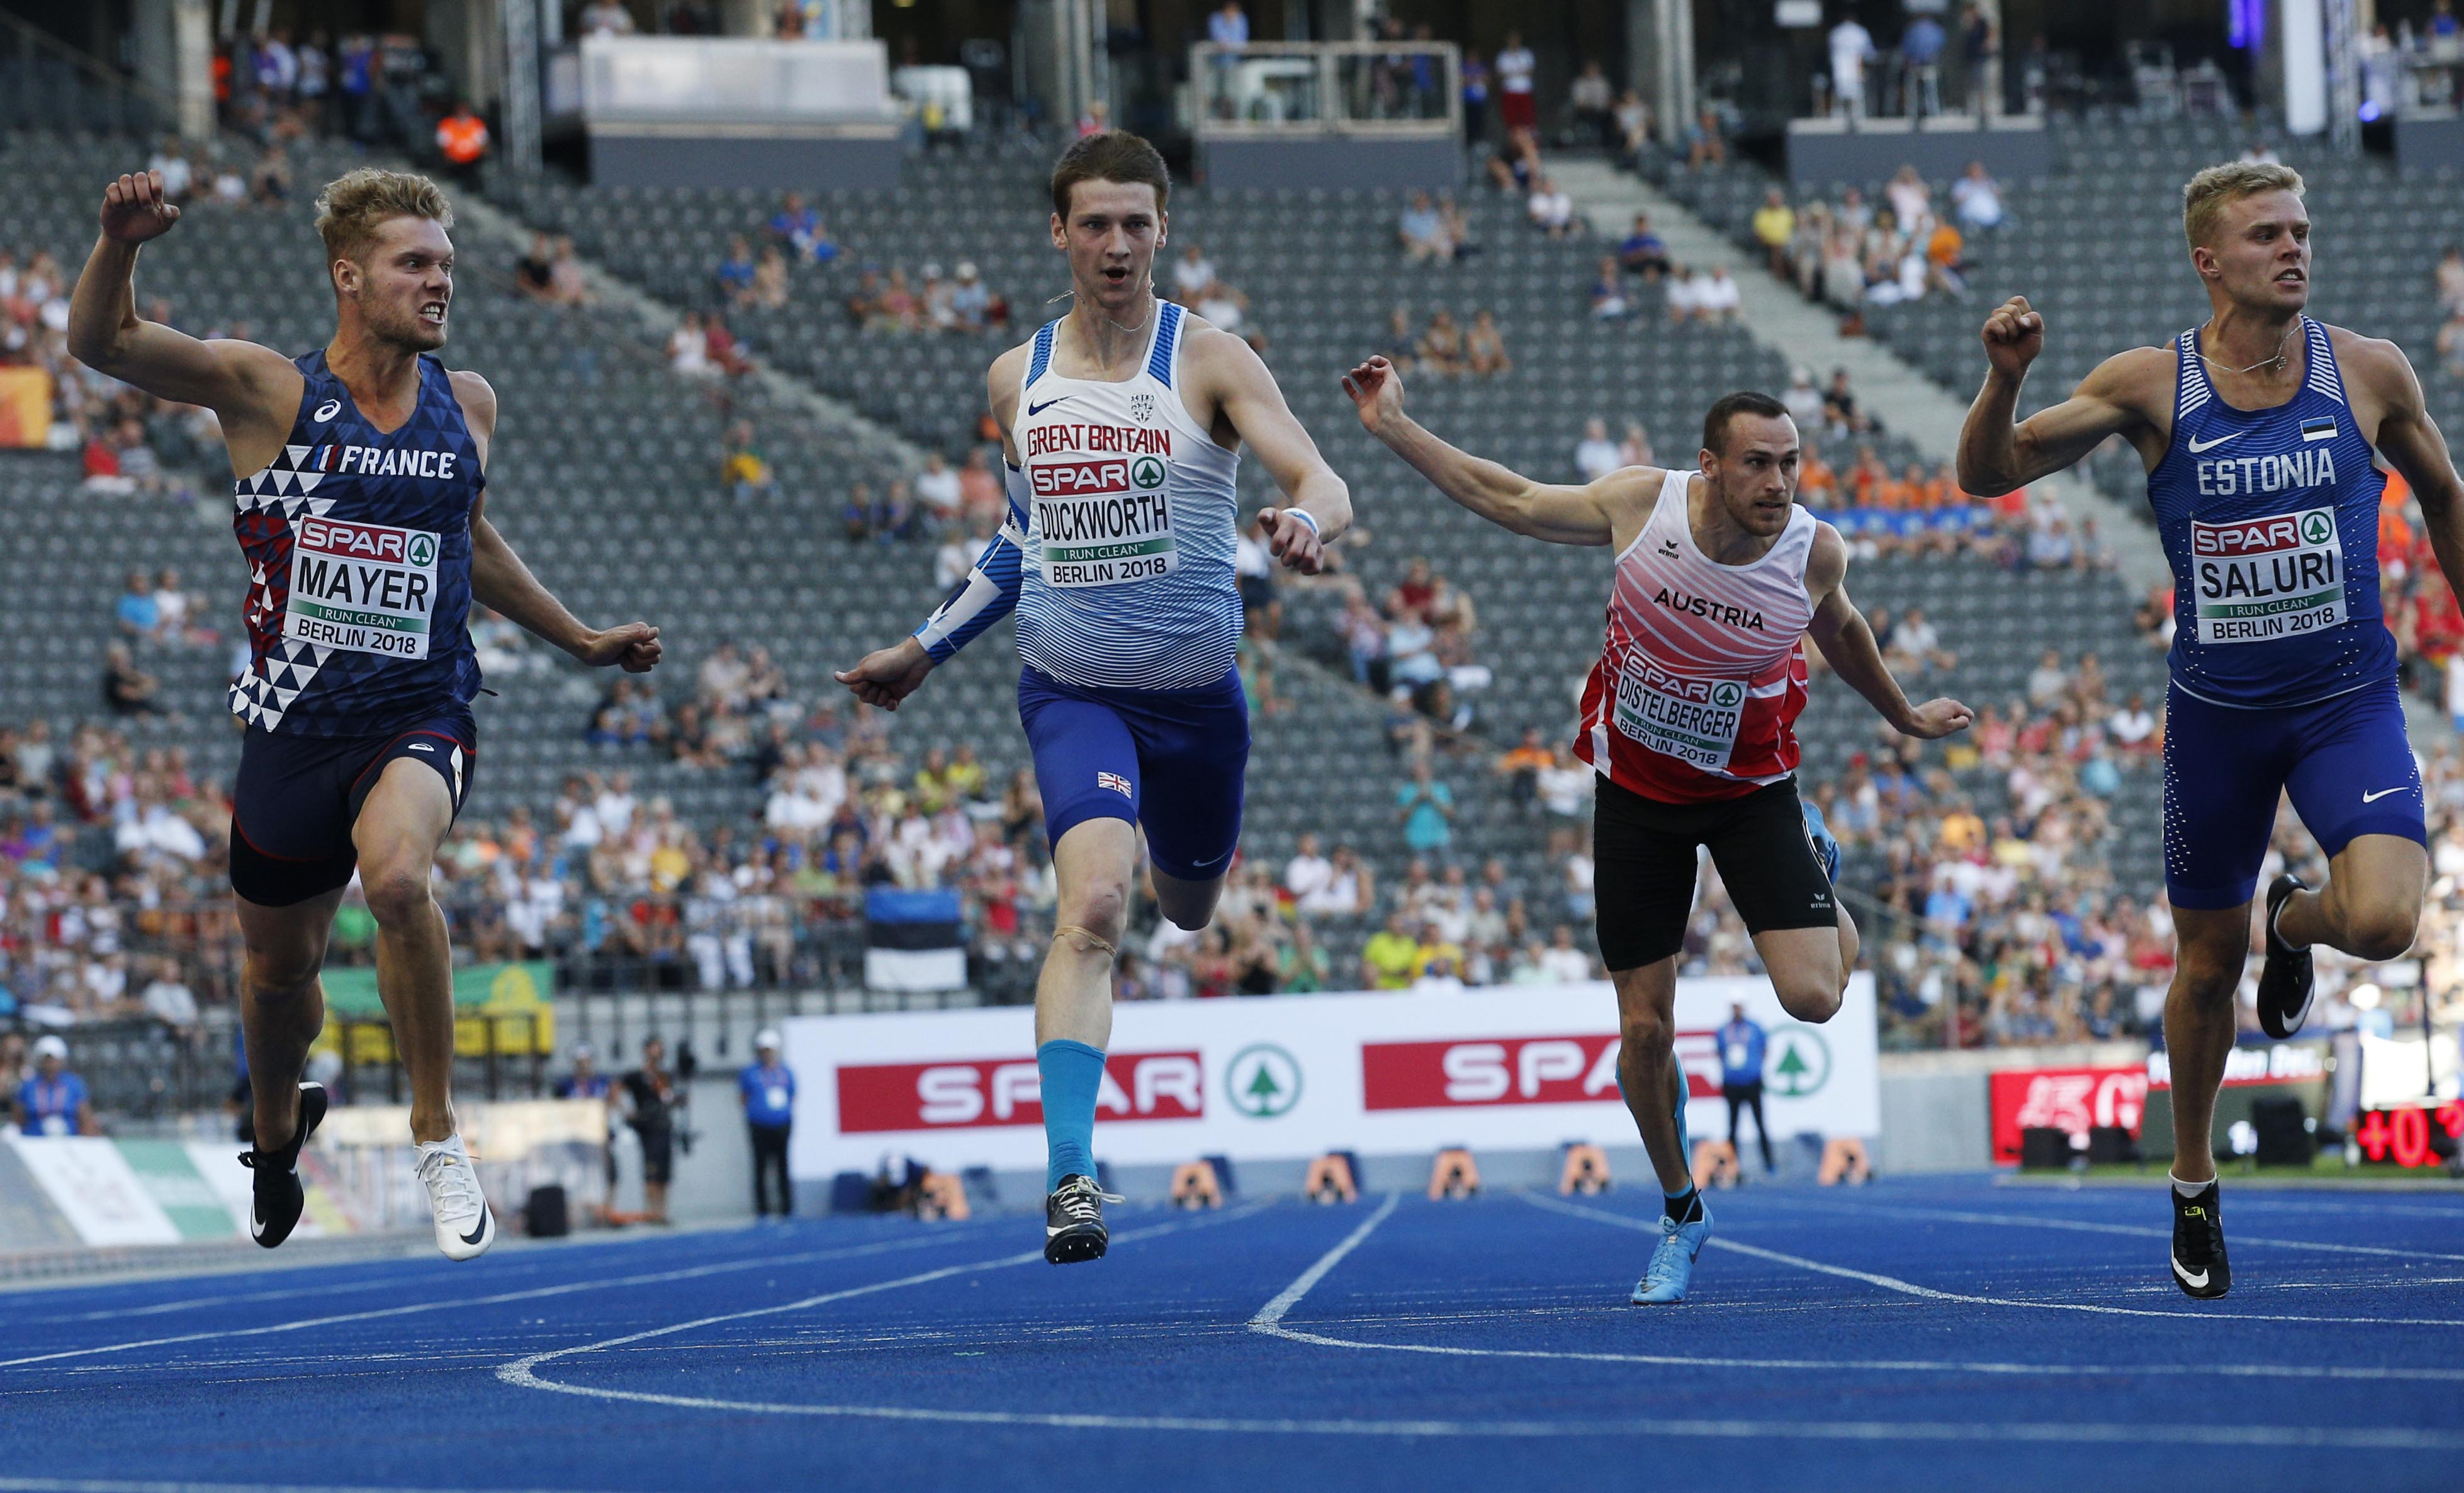 France's Kevin Mayer, Britain's Tim Duckworth, Austria's Dominik Distelberger and Estonia's Karl Robert Saluri, from left, cross the line of the 100-meter event of the decathlon at the European Athletics Championships in Berlin, Germany on Tuesday.